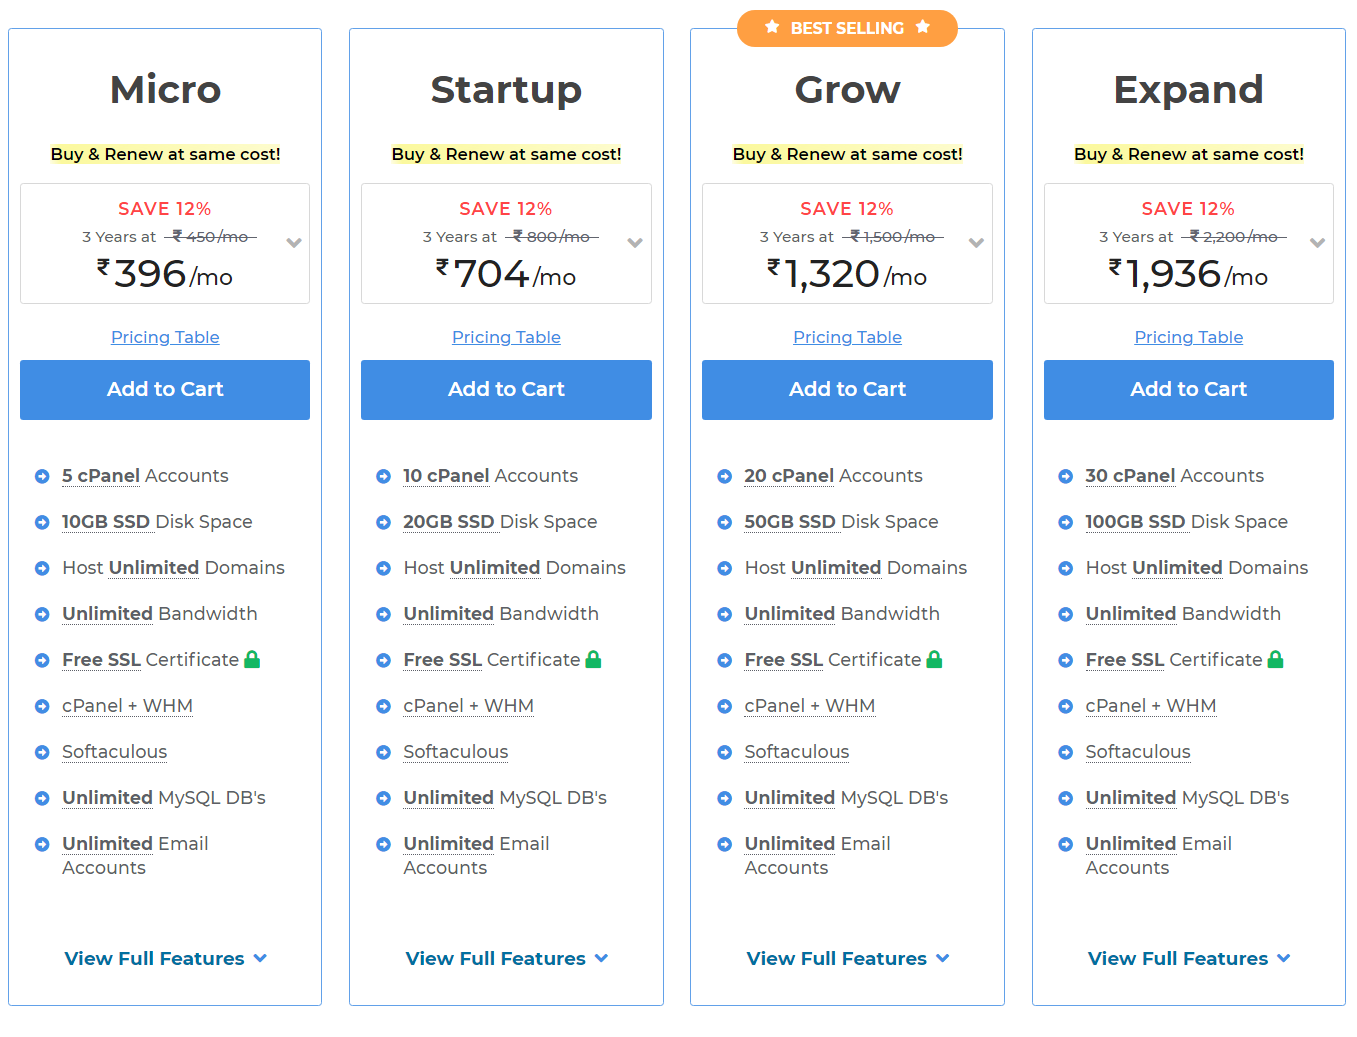 Micro, Startup, Grow and Expand Plans